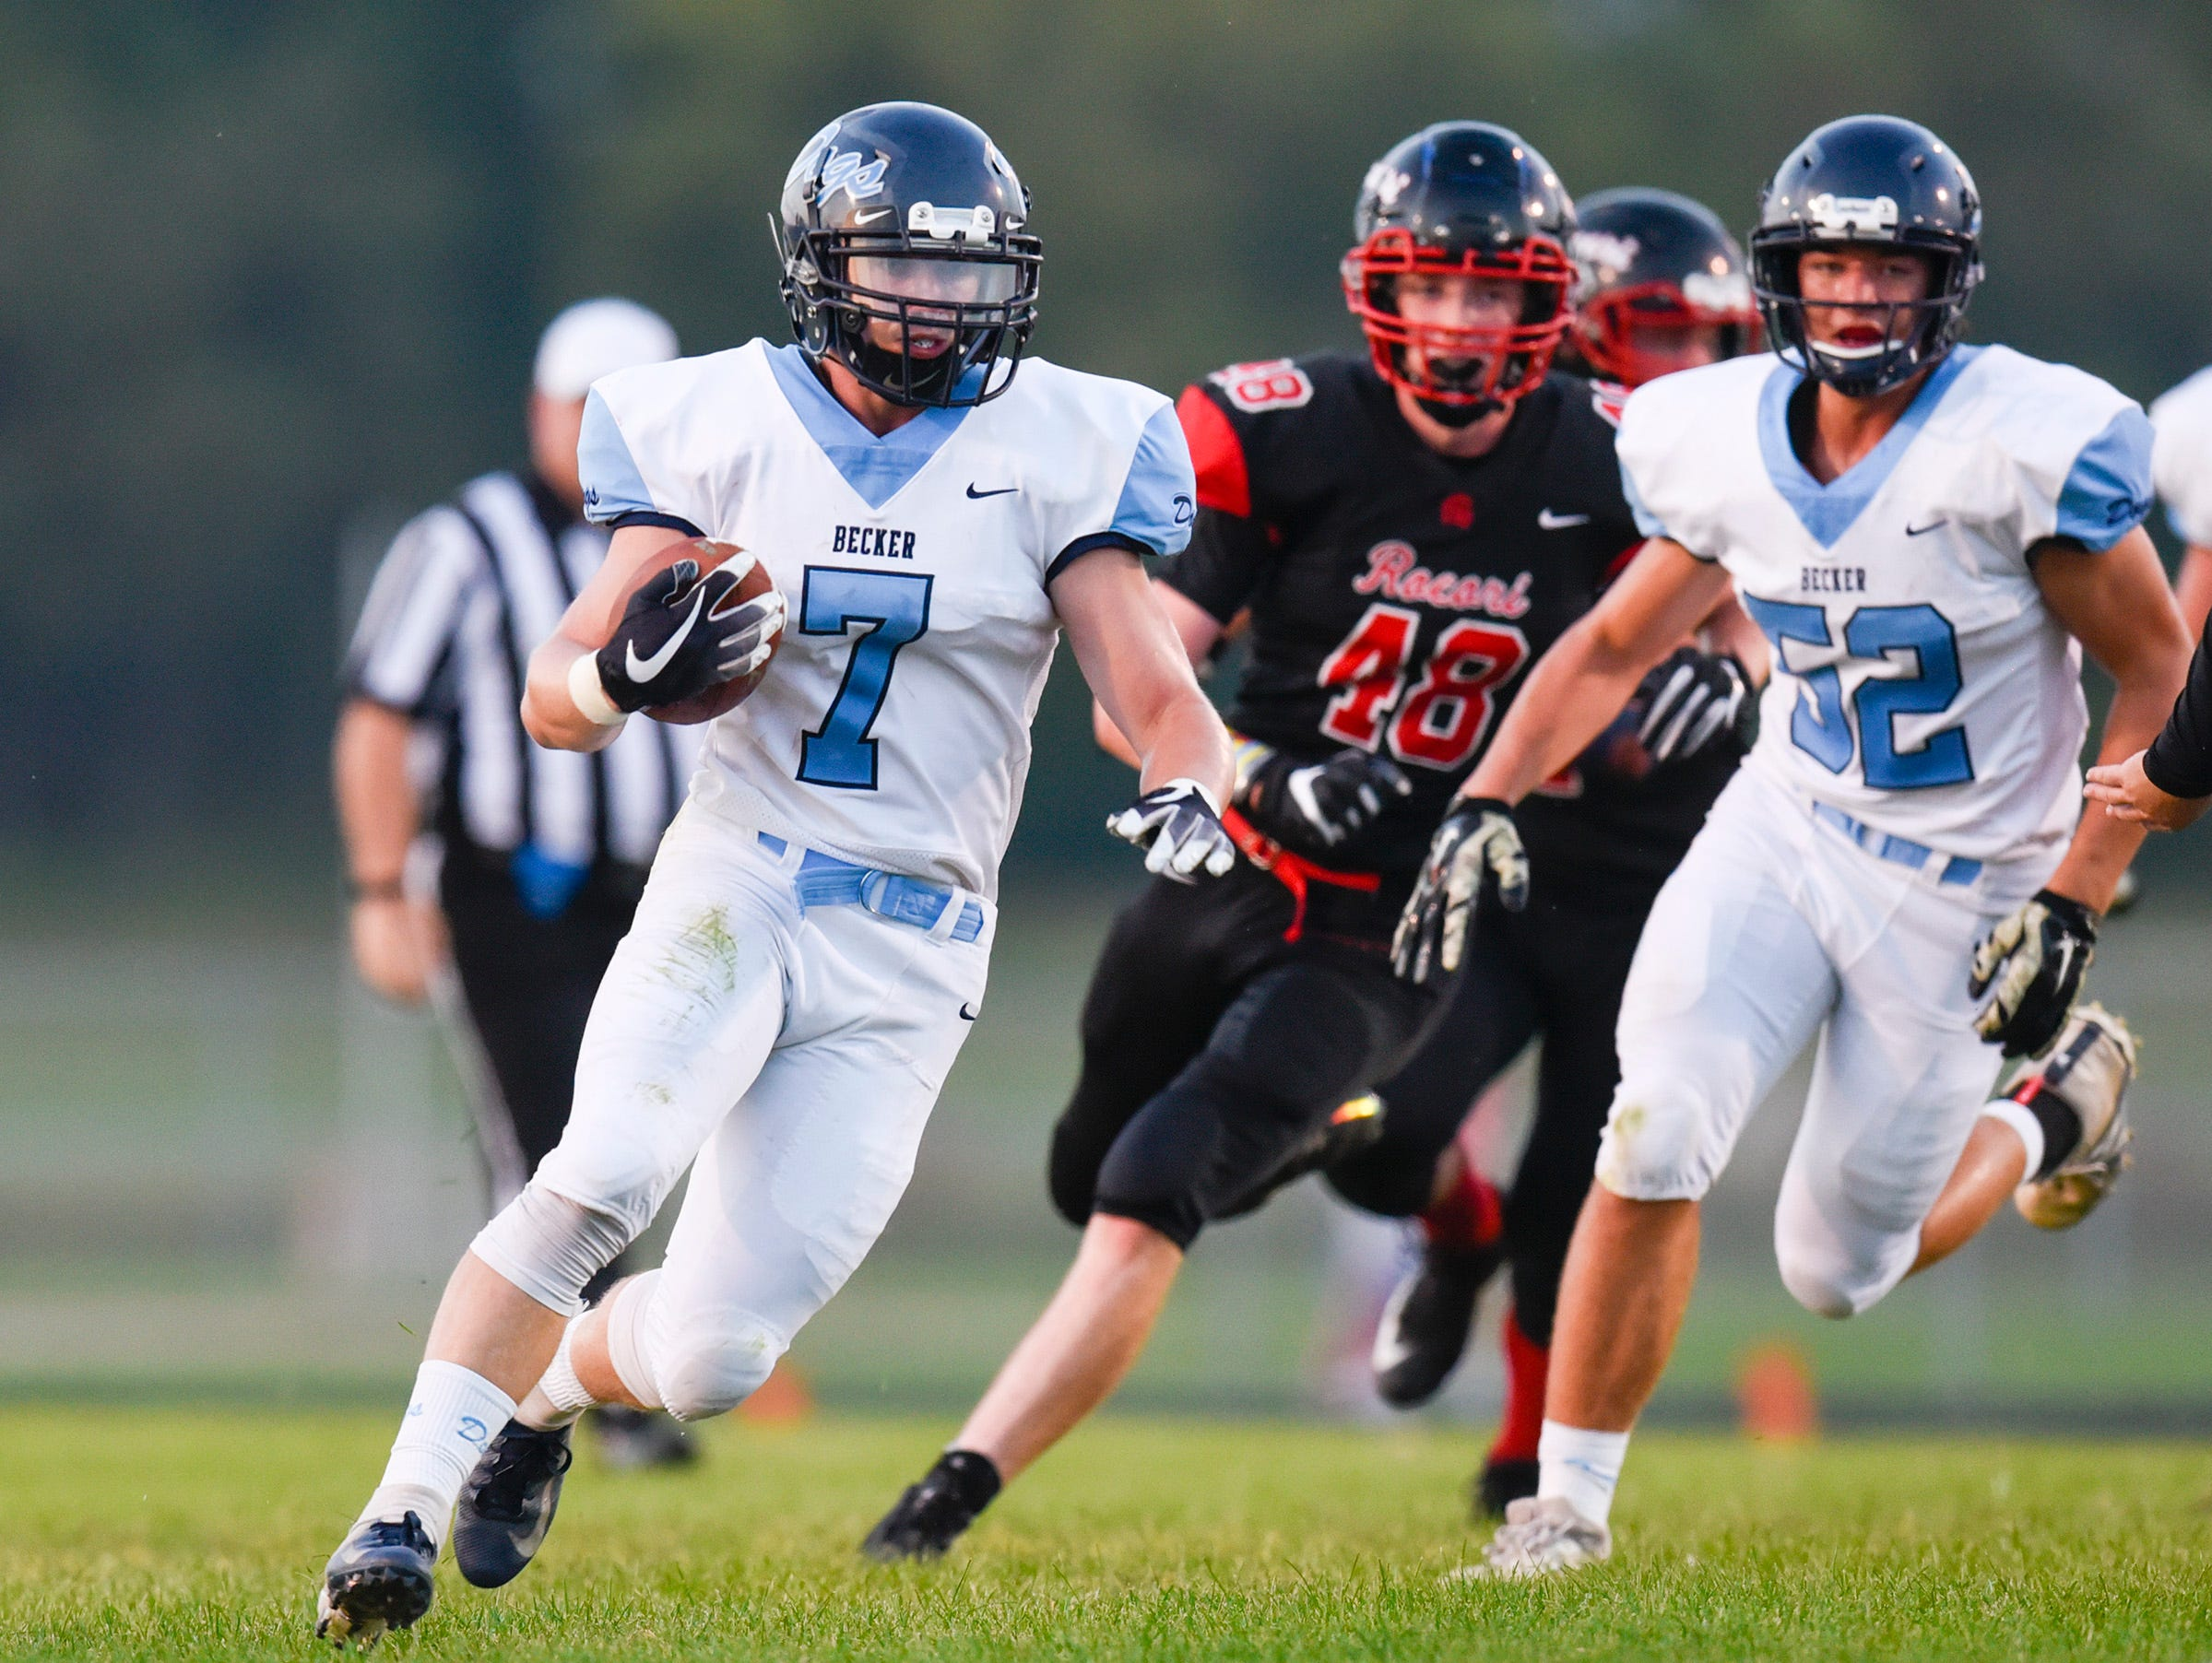 Becker's Austin Berning makes yardage during the first half Friday, Sept. 14, in Cold Spring.